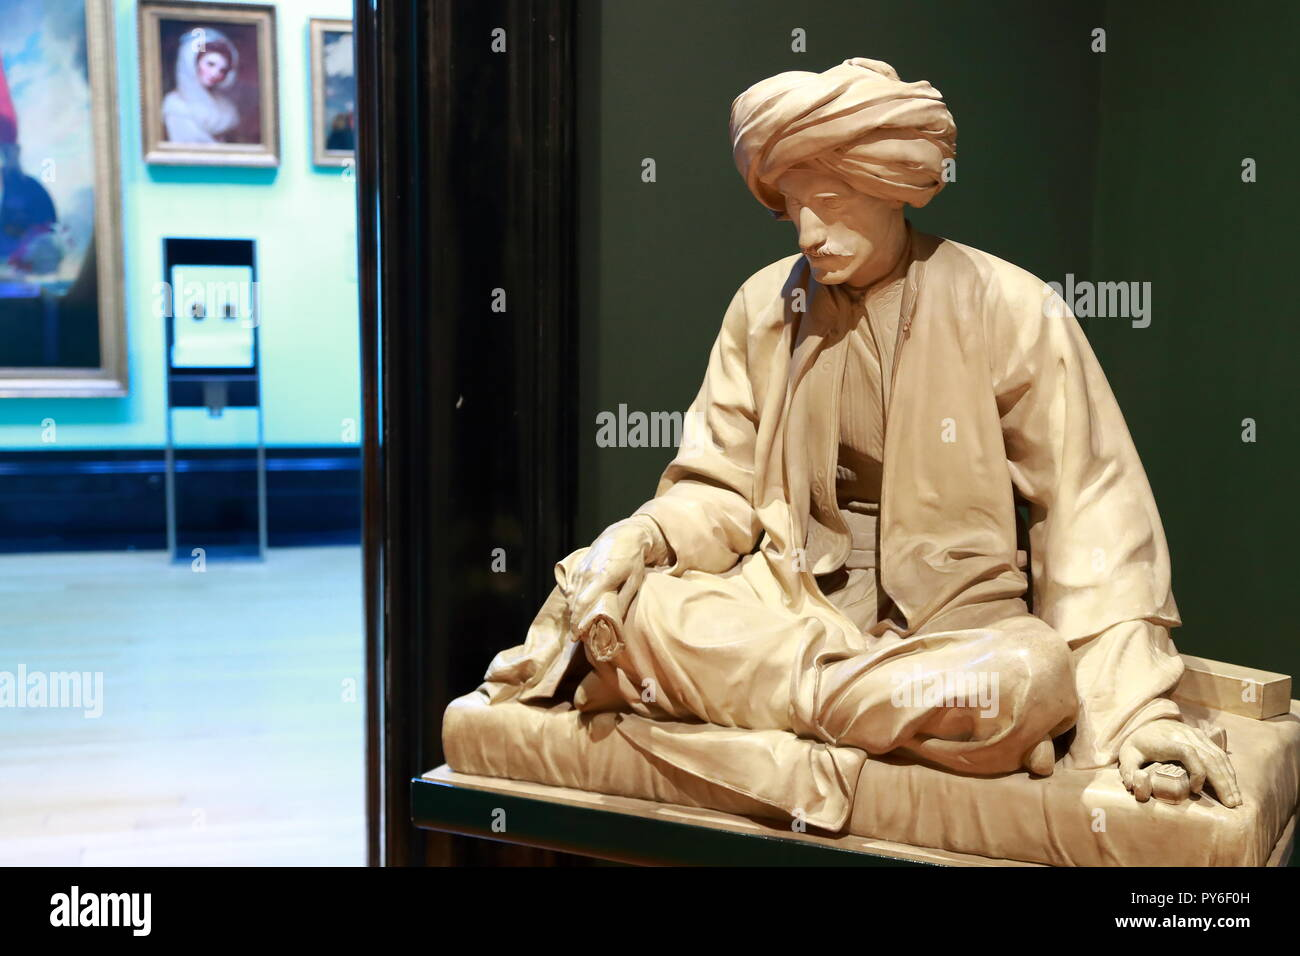 A sculpture by Richard James Lane depicting Edward William Lane at the National Portrait Gallary, London, UK - Stock Image